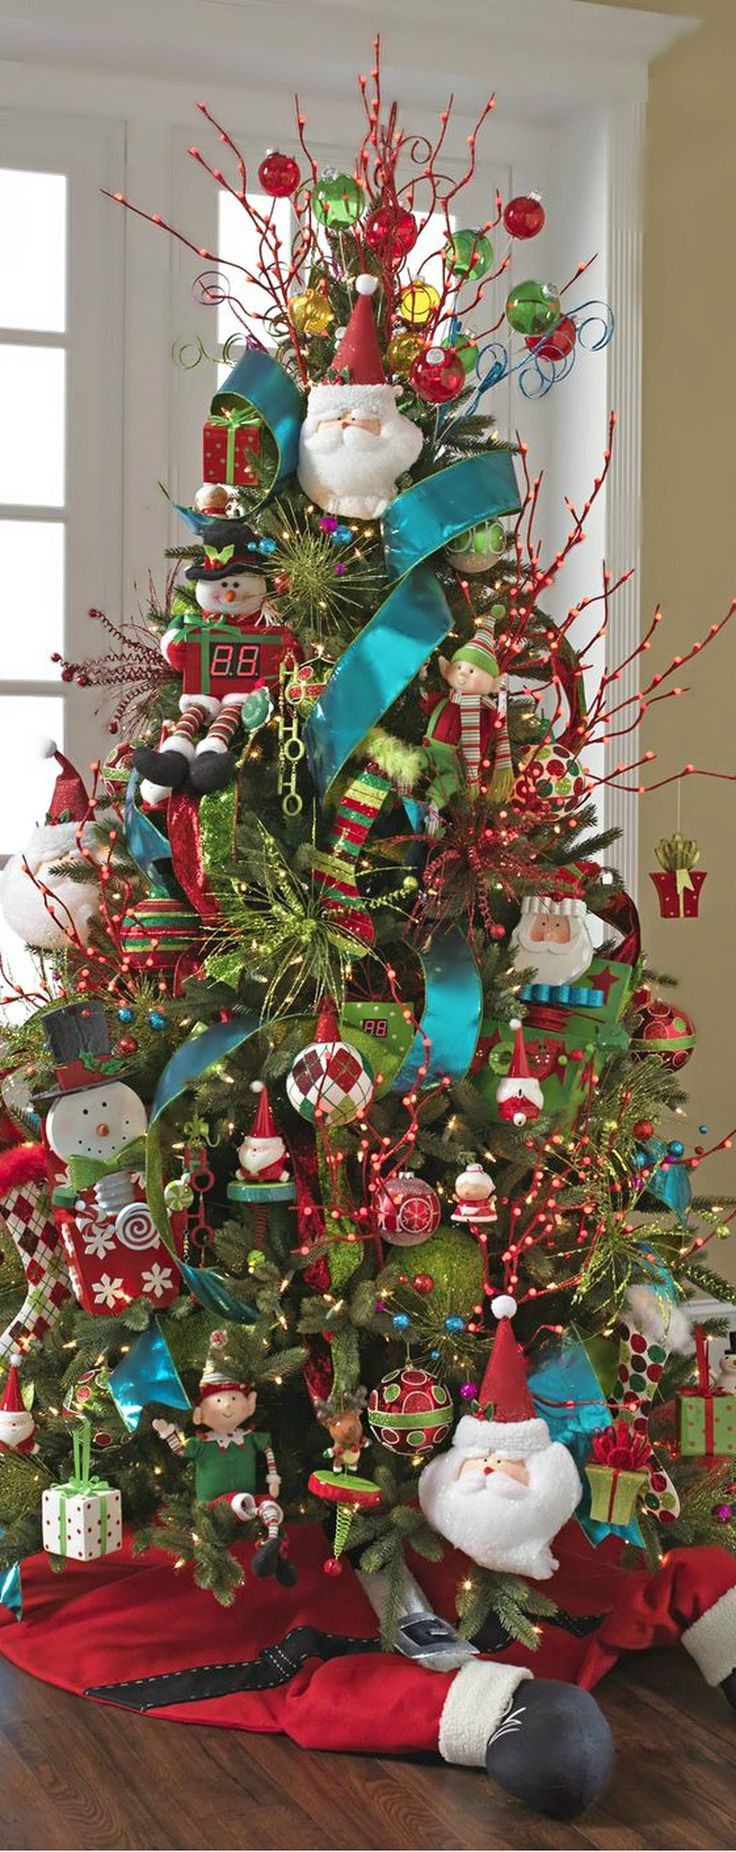 cool 49 Cute and Colorful Christmas Tree Decoration Ideas to Freshen Up Your Home http://homedecorish.com/2017/11/12/49-cute-and-colorful-christmas-tree-decoration-ideas-to-freshen-up-your-home/